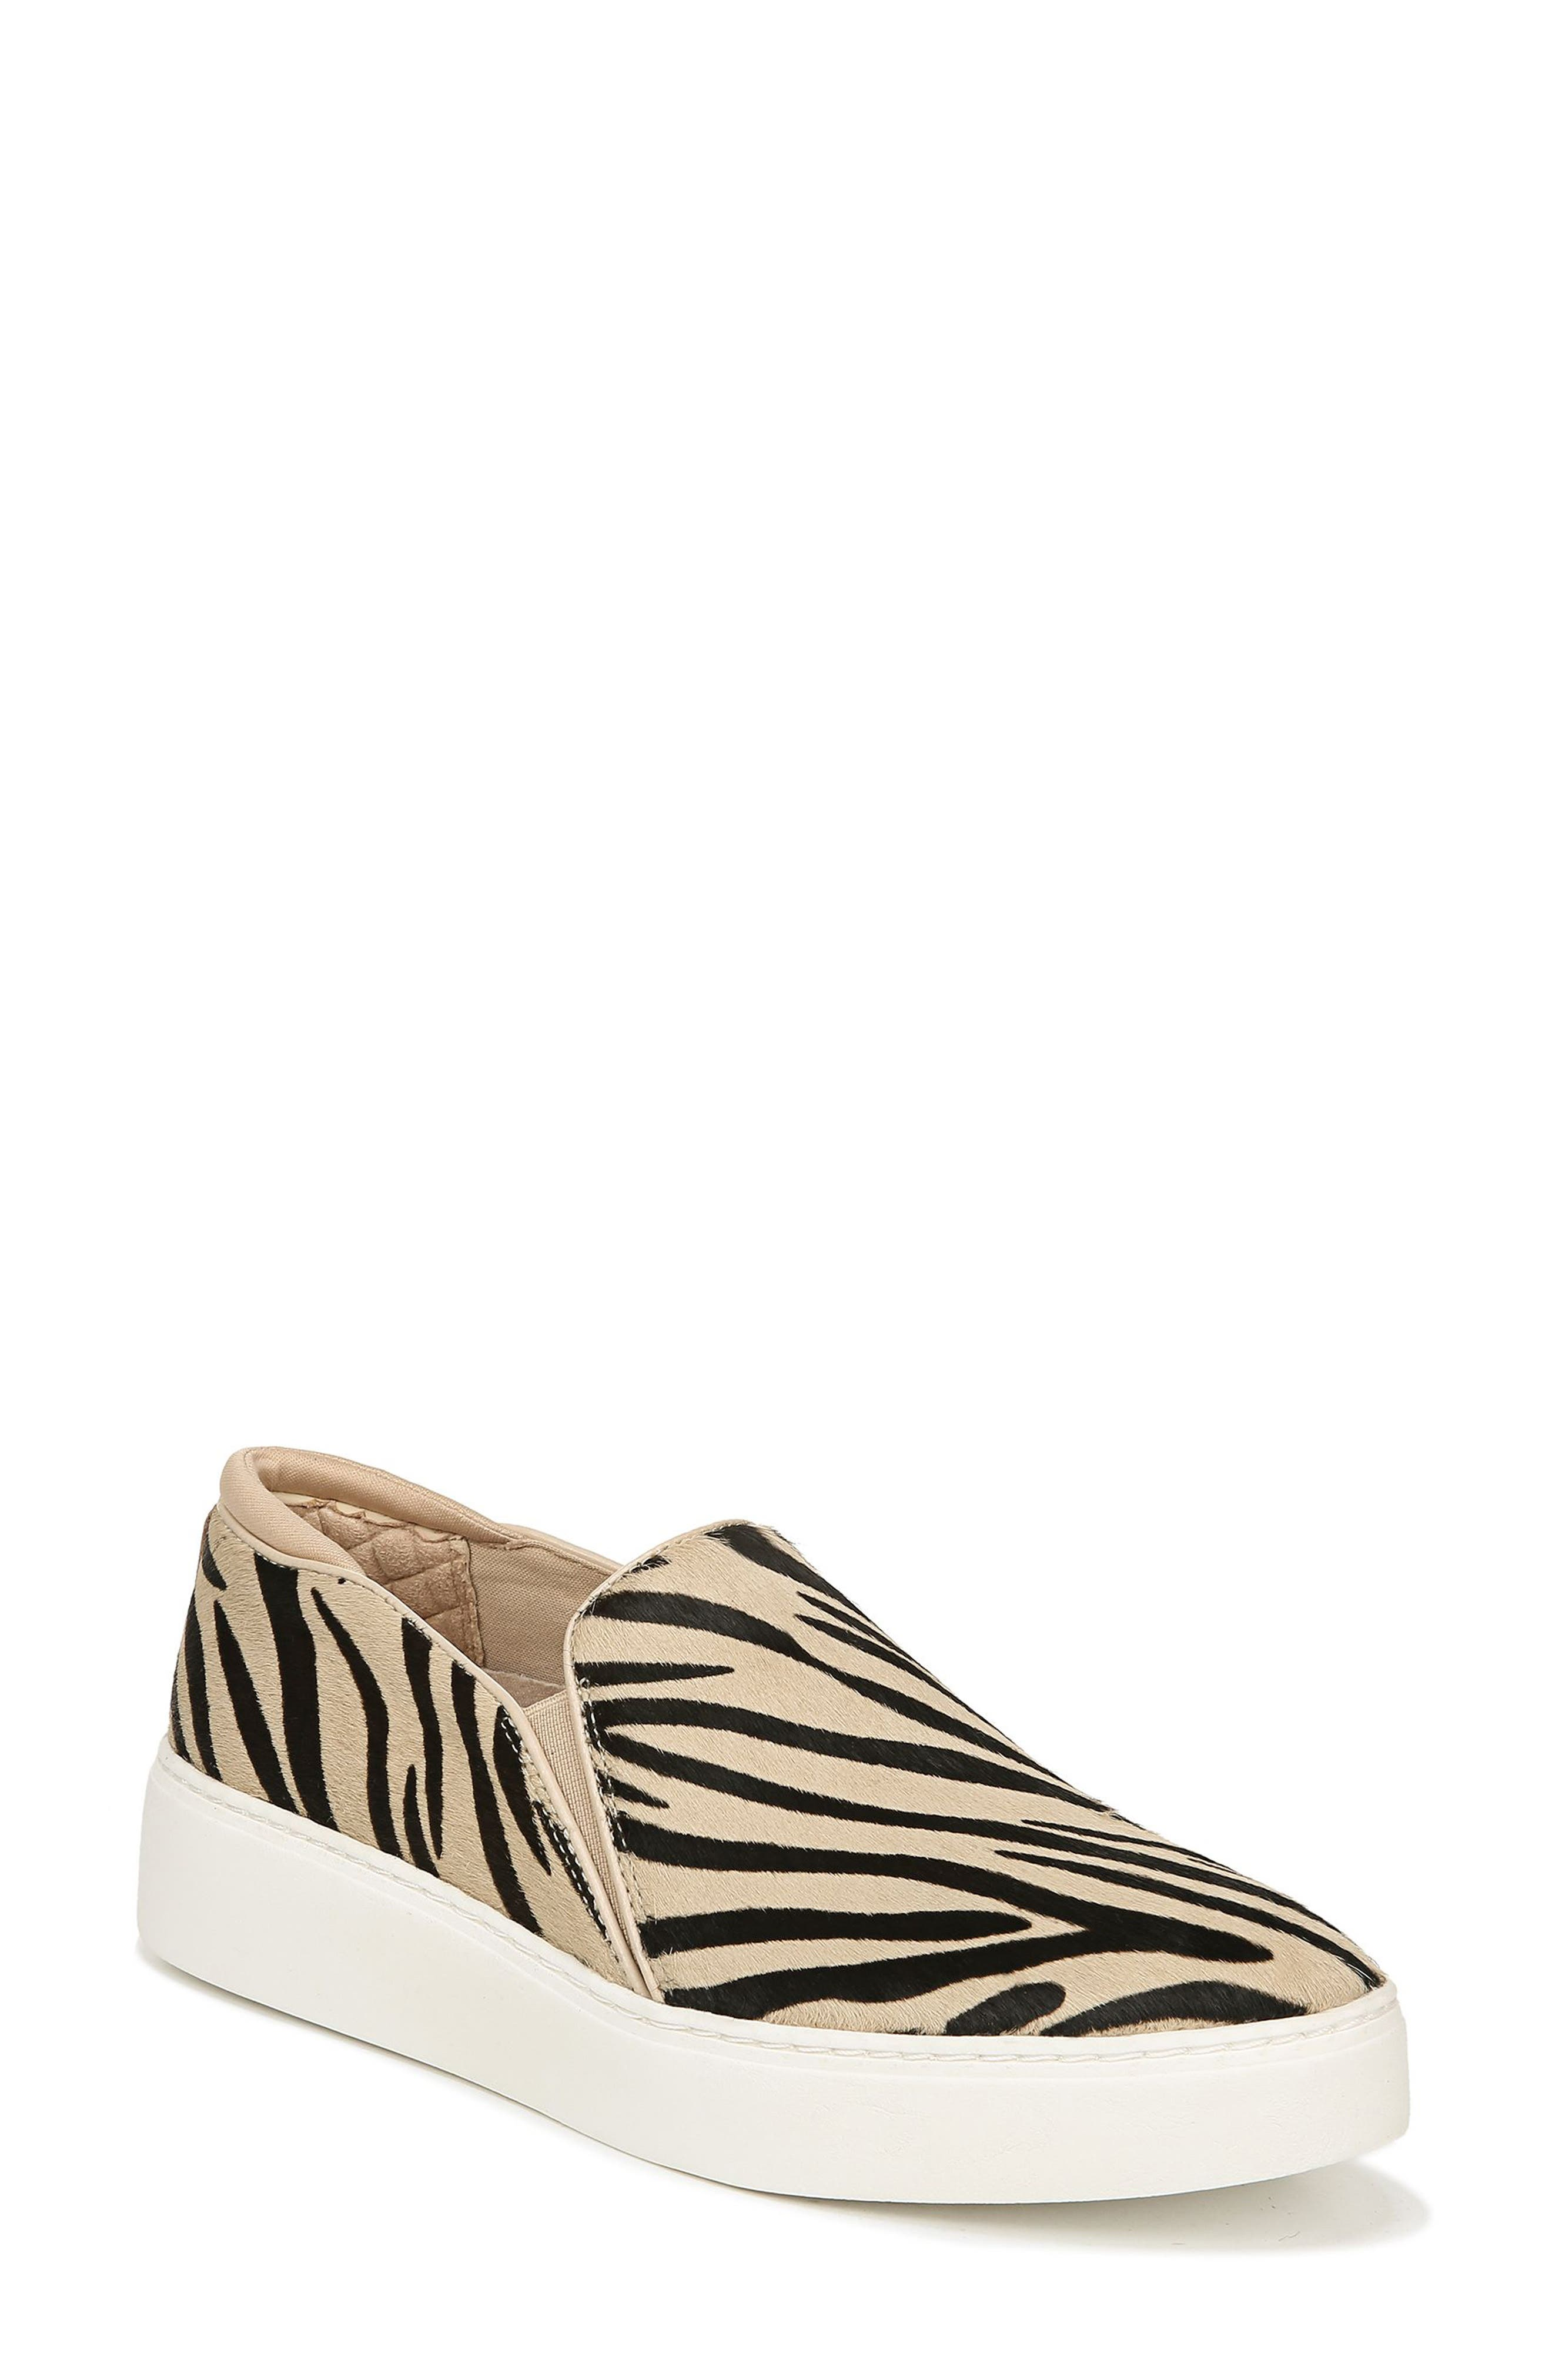 Image of Dr. Scholl's Dazed Genuine Calf Hair Slip-On Platform Sneaker